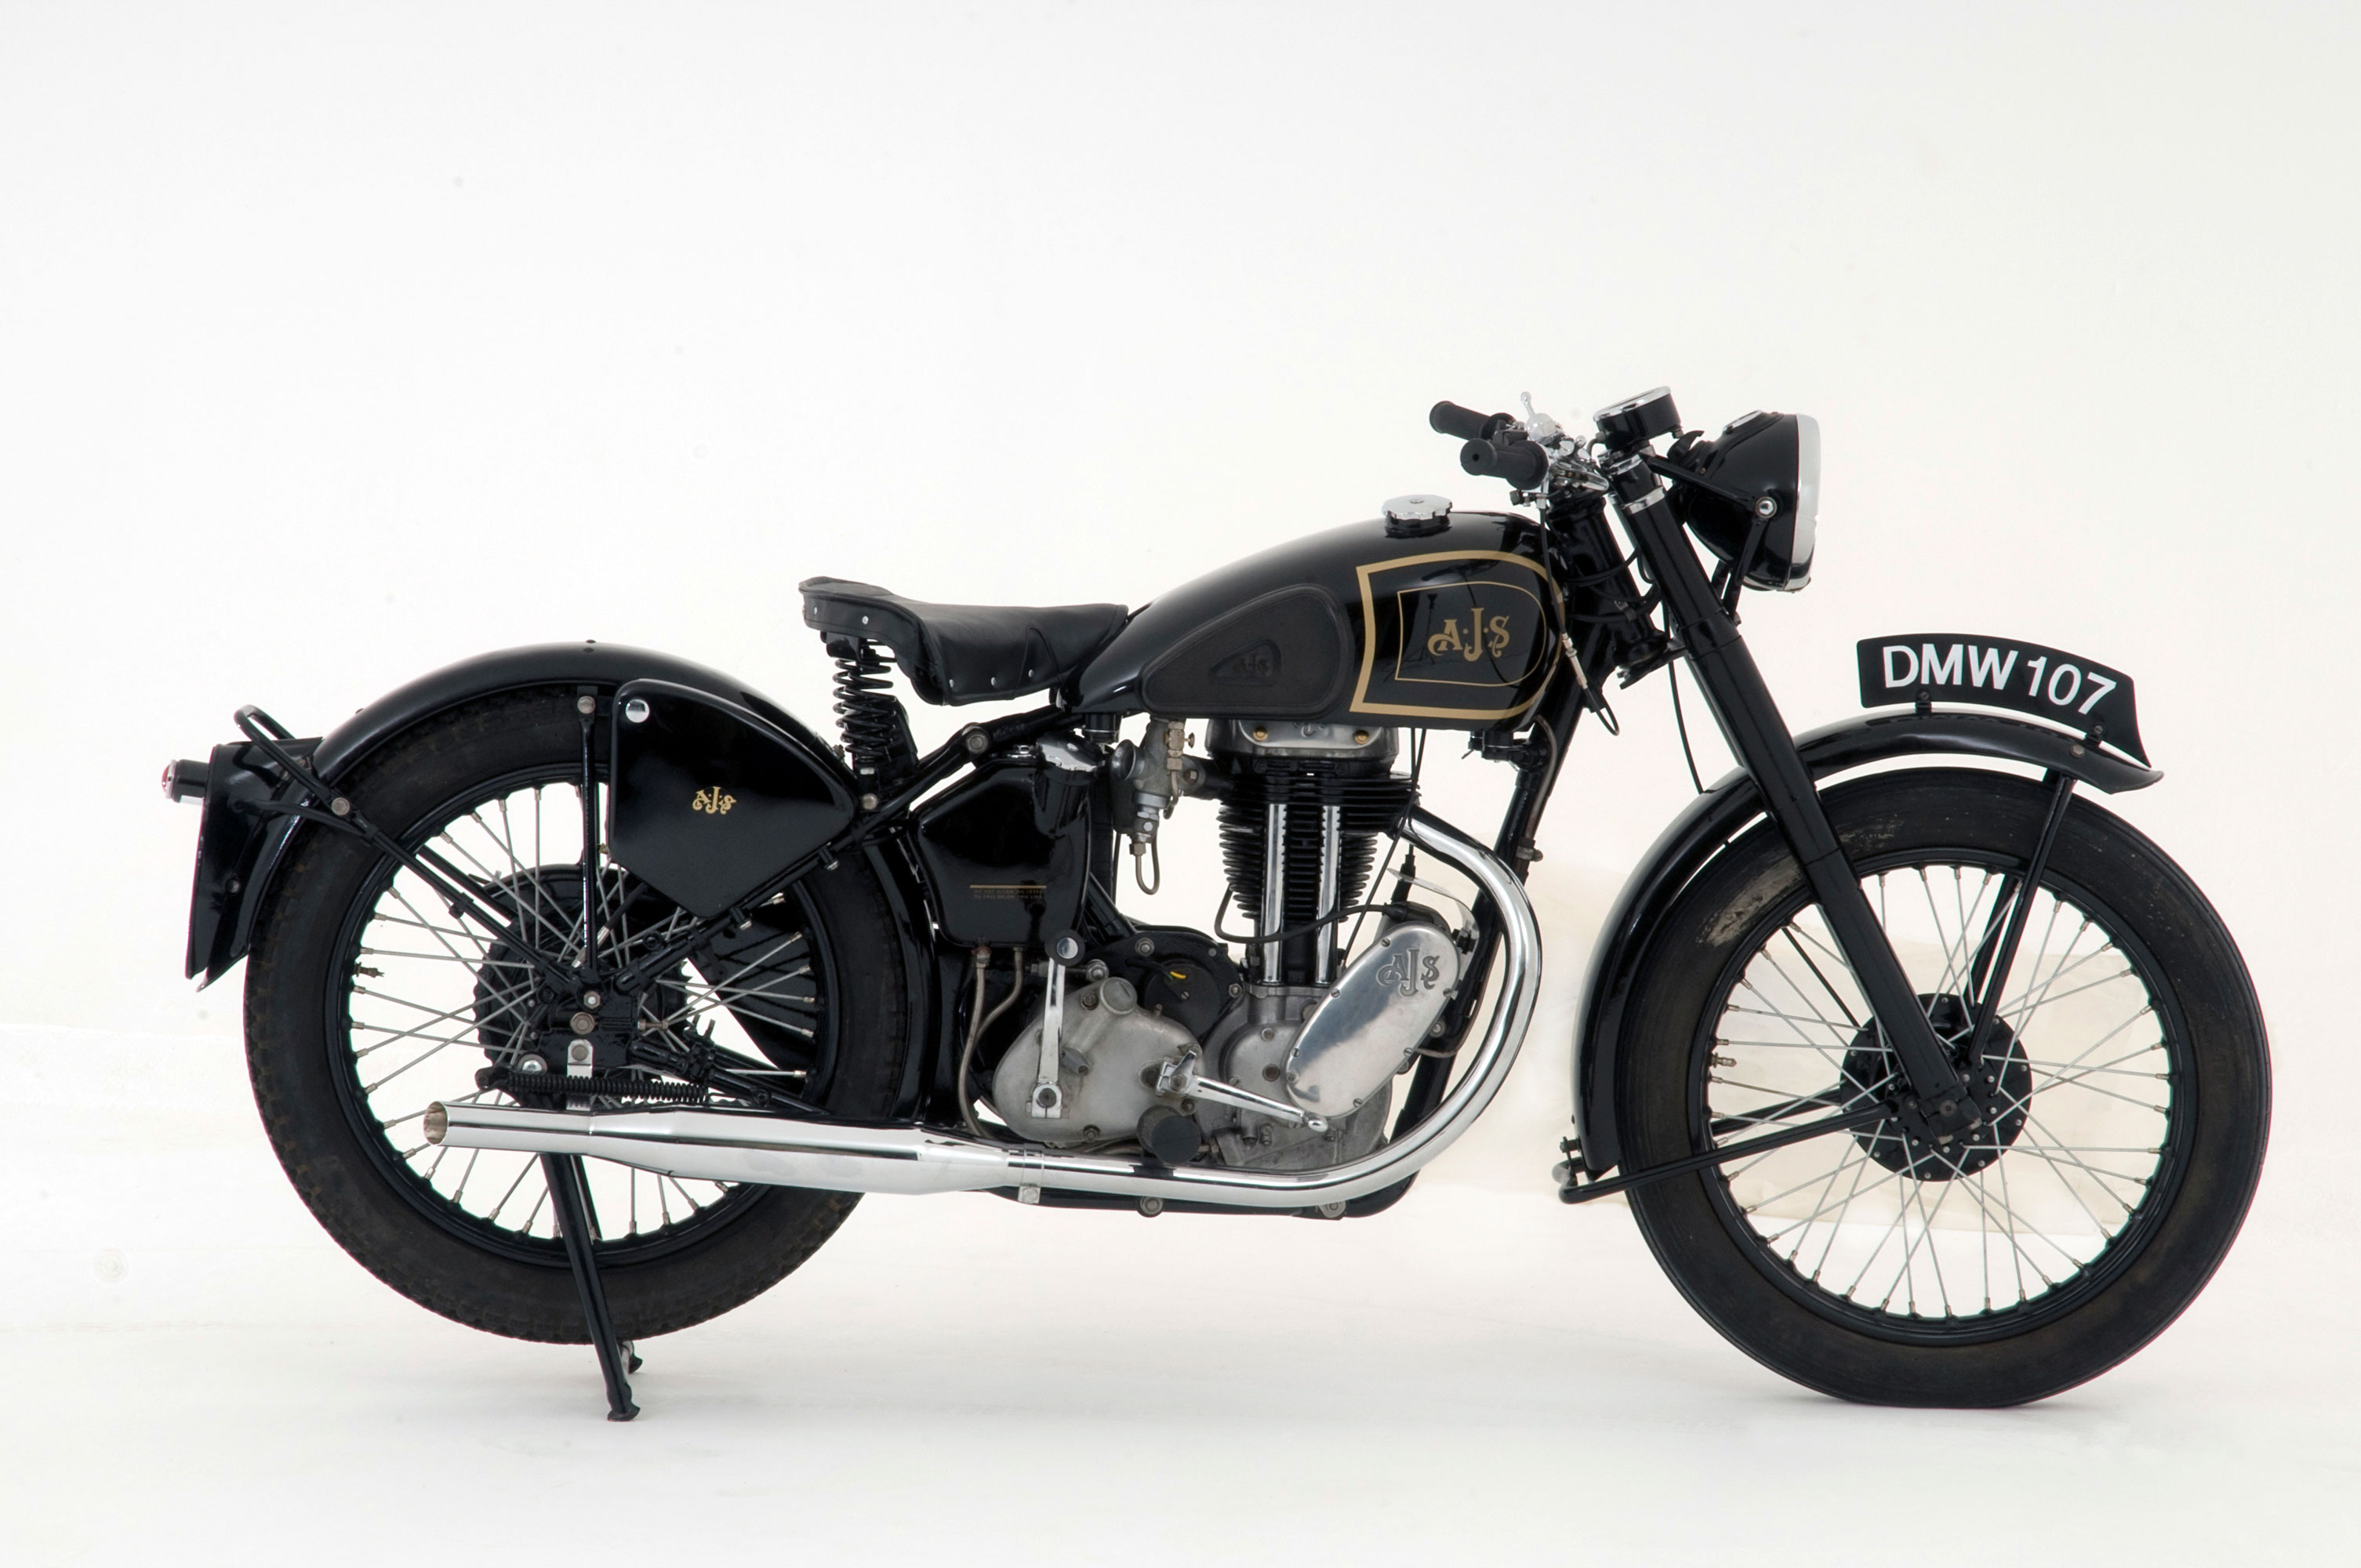 A 1946 AJS Model 16M motorcycle